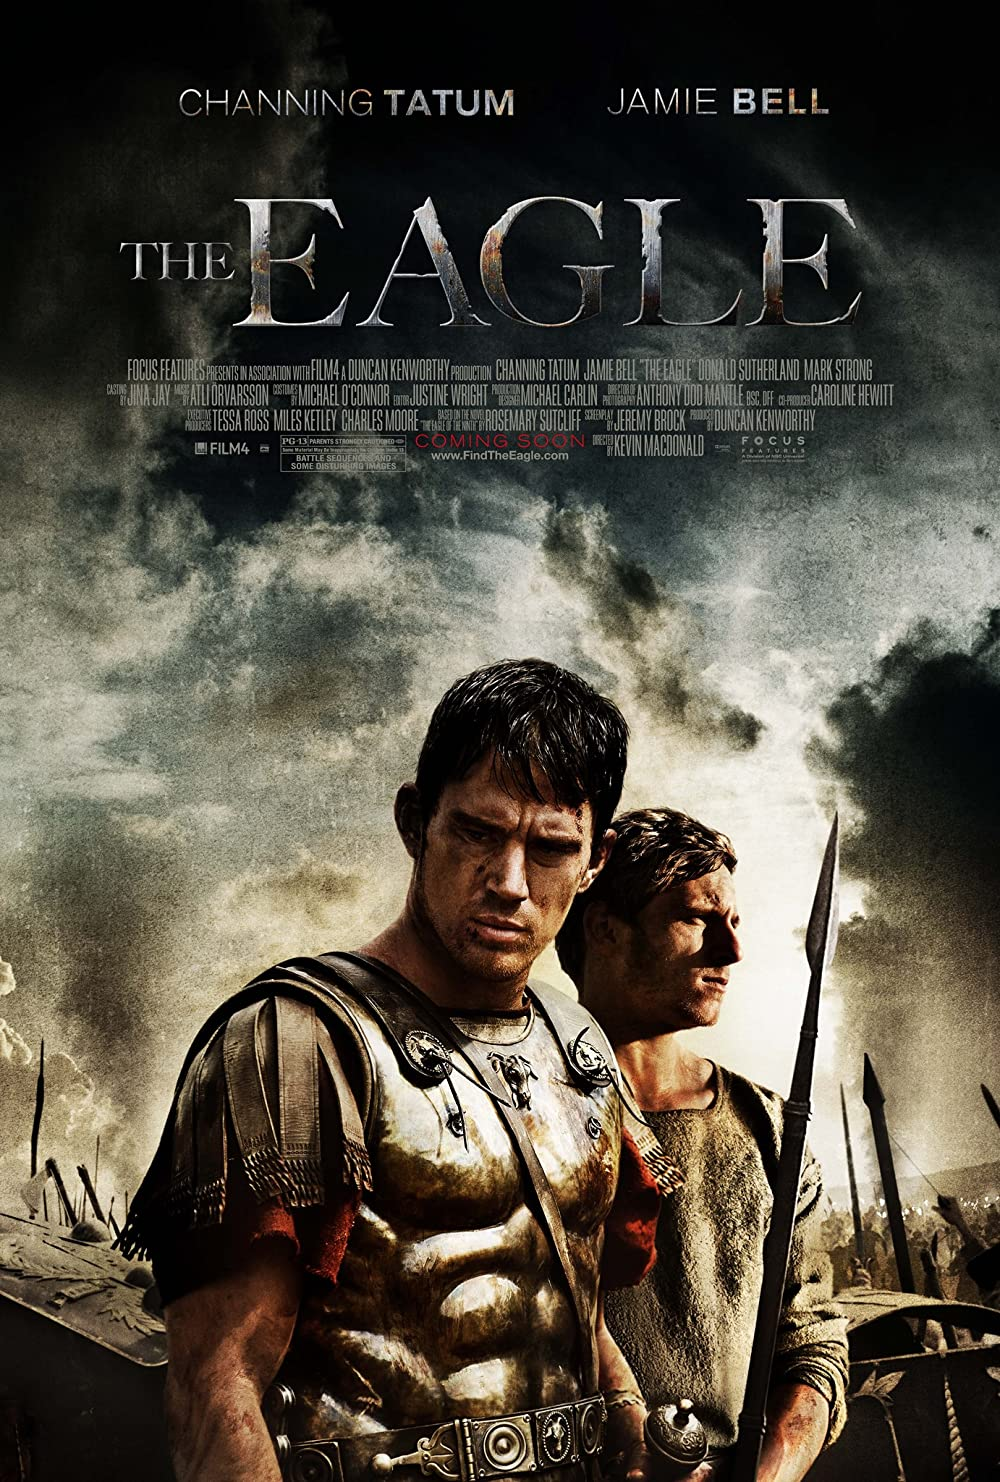 The Eagle 2011 Hindi Dual Audio 1080p BluRay ESubs 1.67GB Download